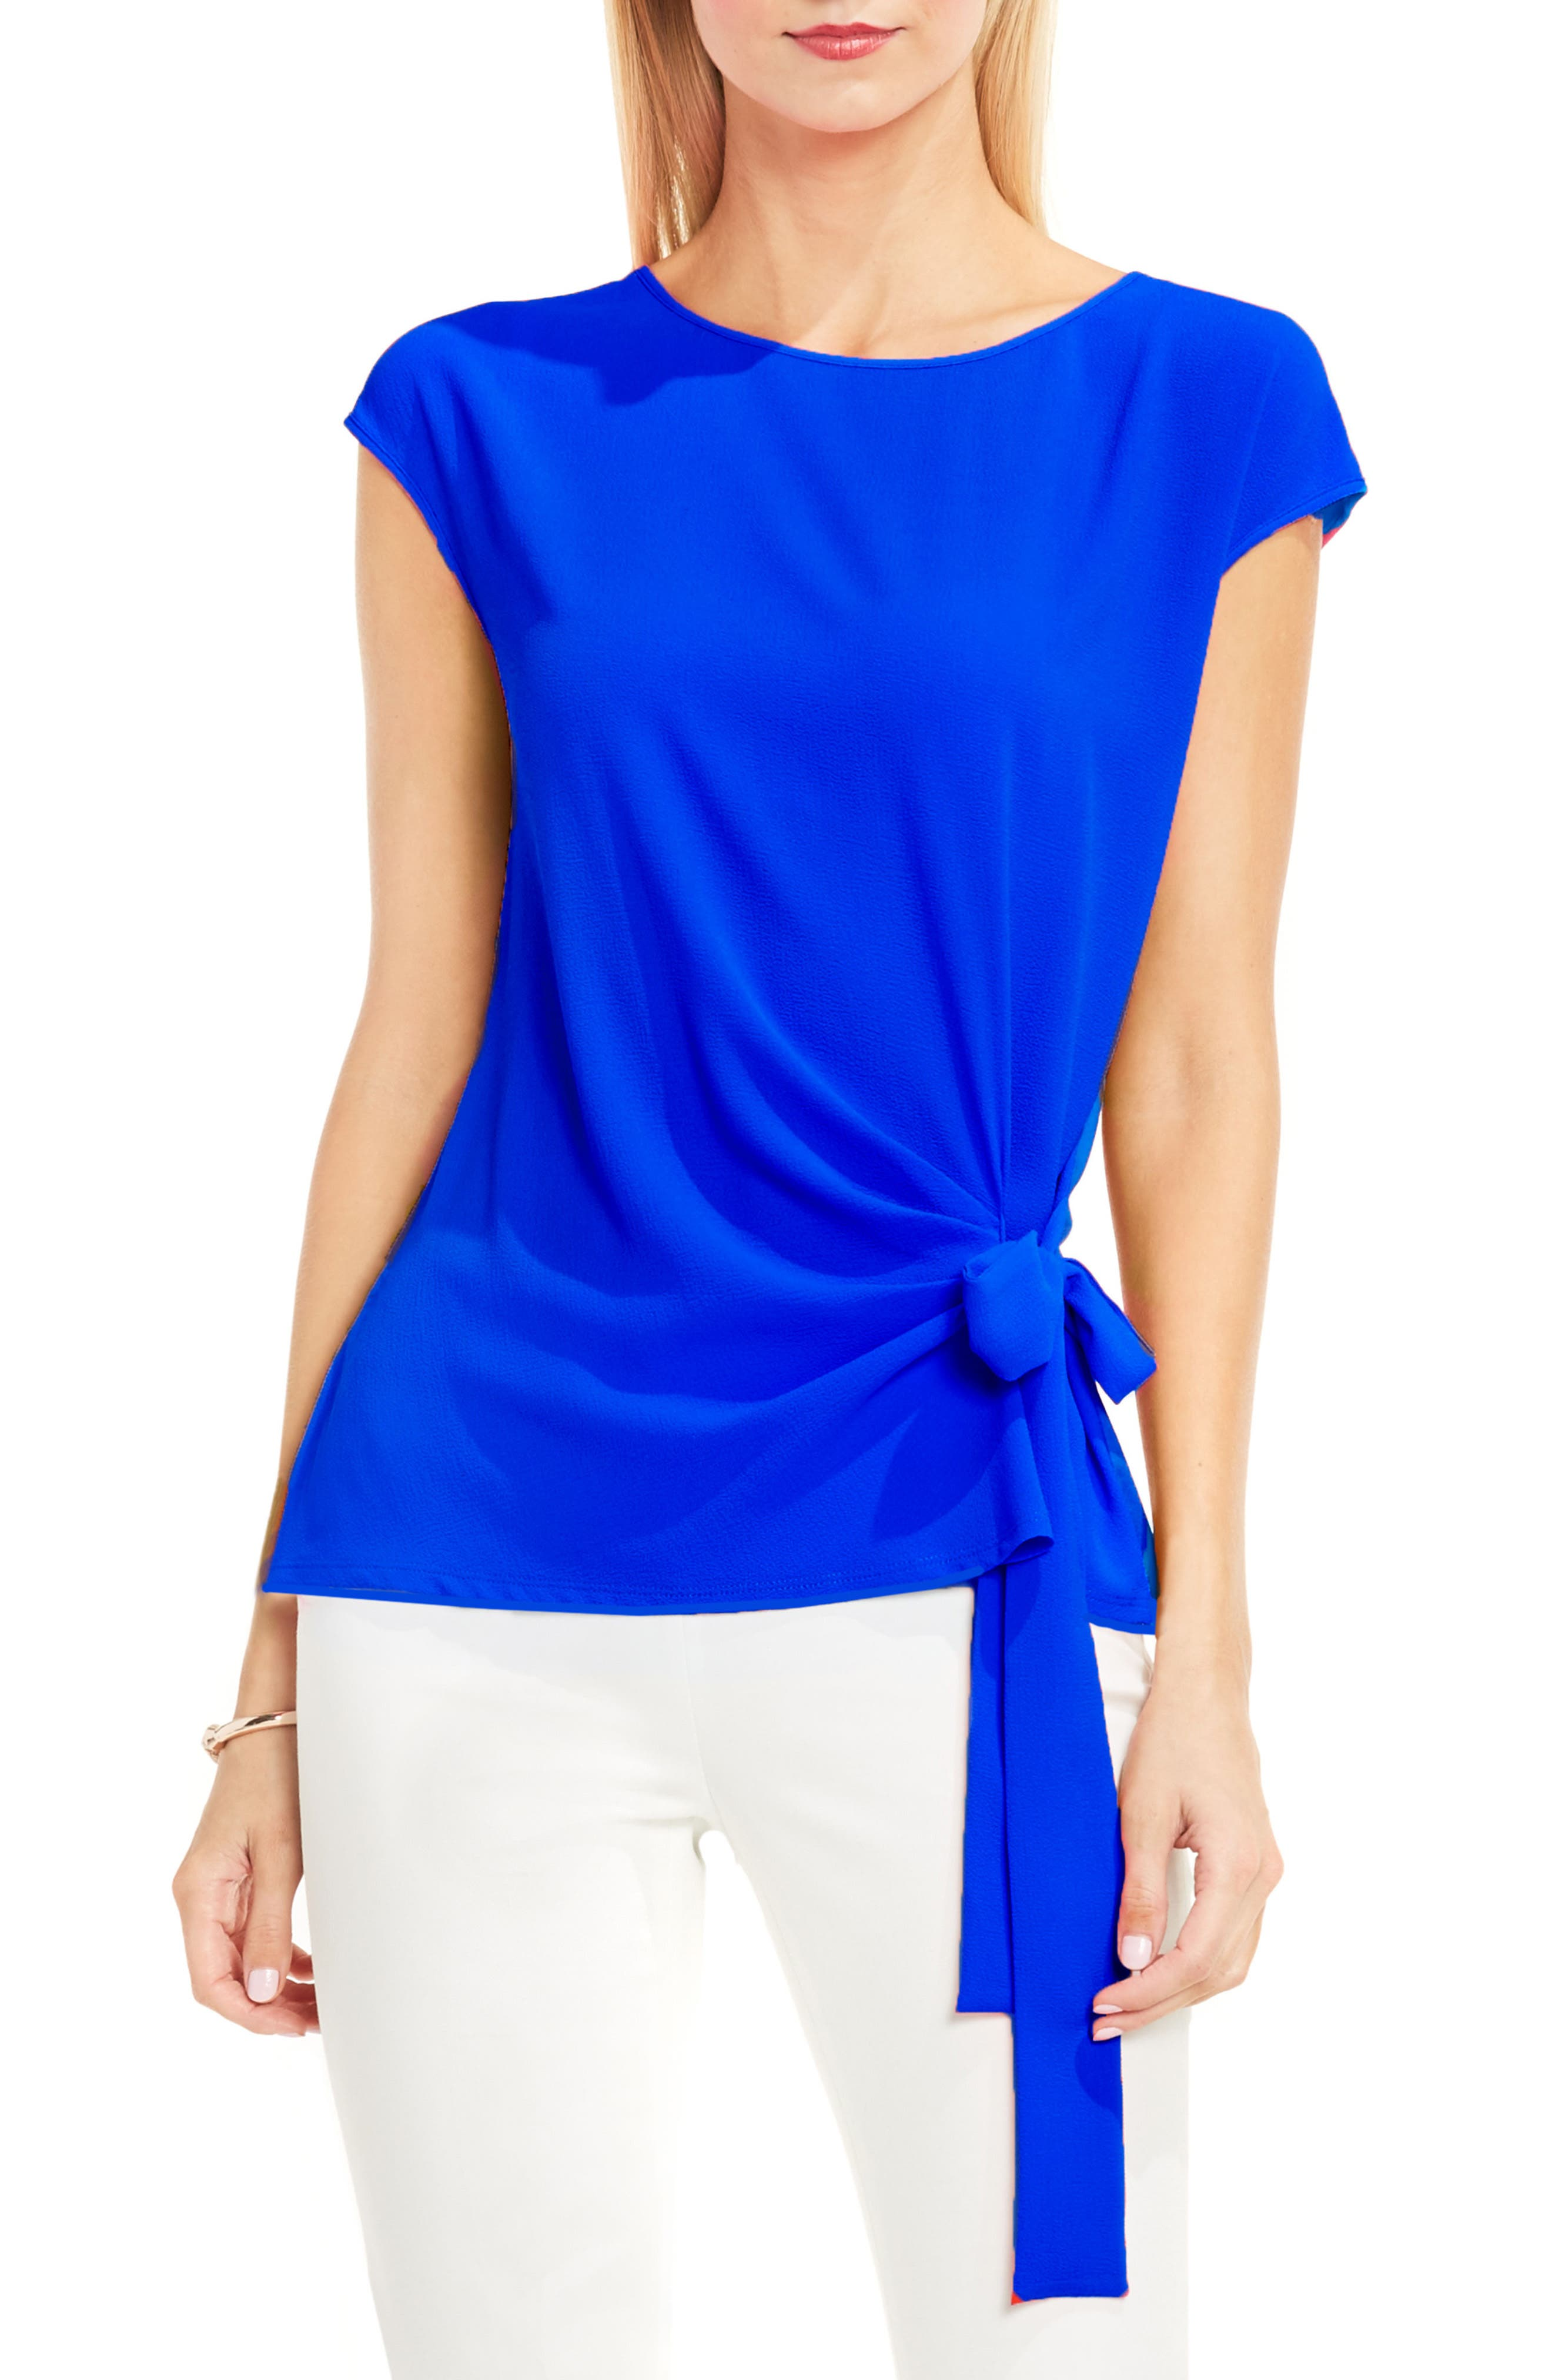 Alternate Image 1 Selected - Vince Camuto Mixed Media Tie Front Blouse (Regular & Petite)